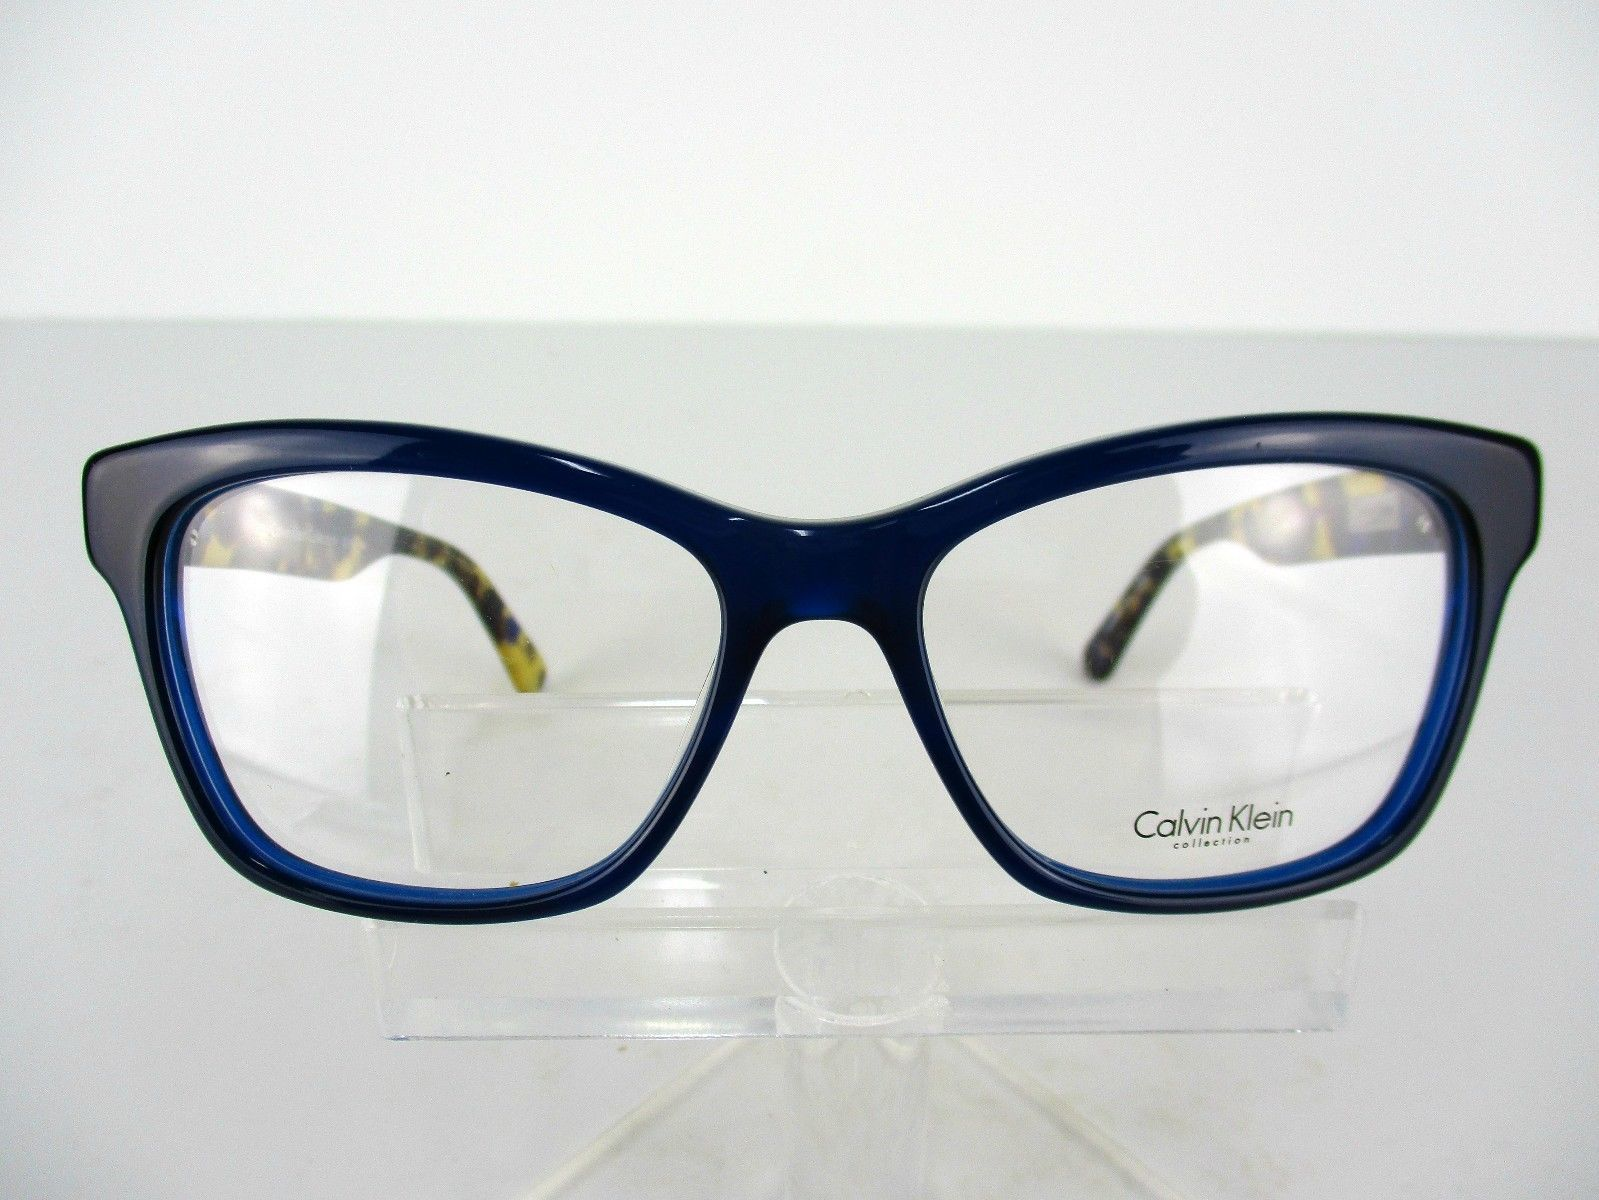 Calvin Klein CK 7982 (461) Navy Blue 51 X 15 135 mm Eyeglass Frame